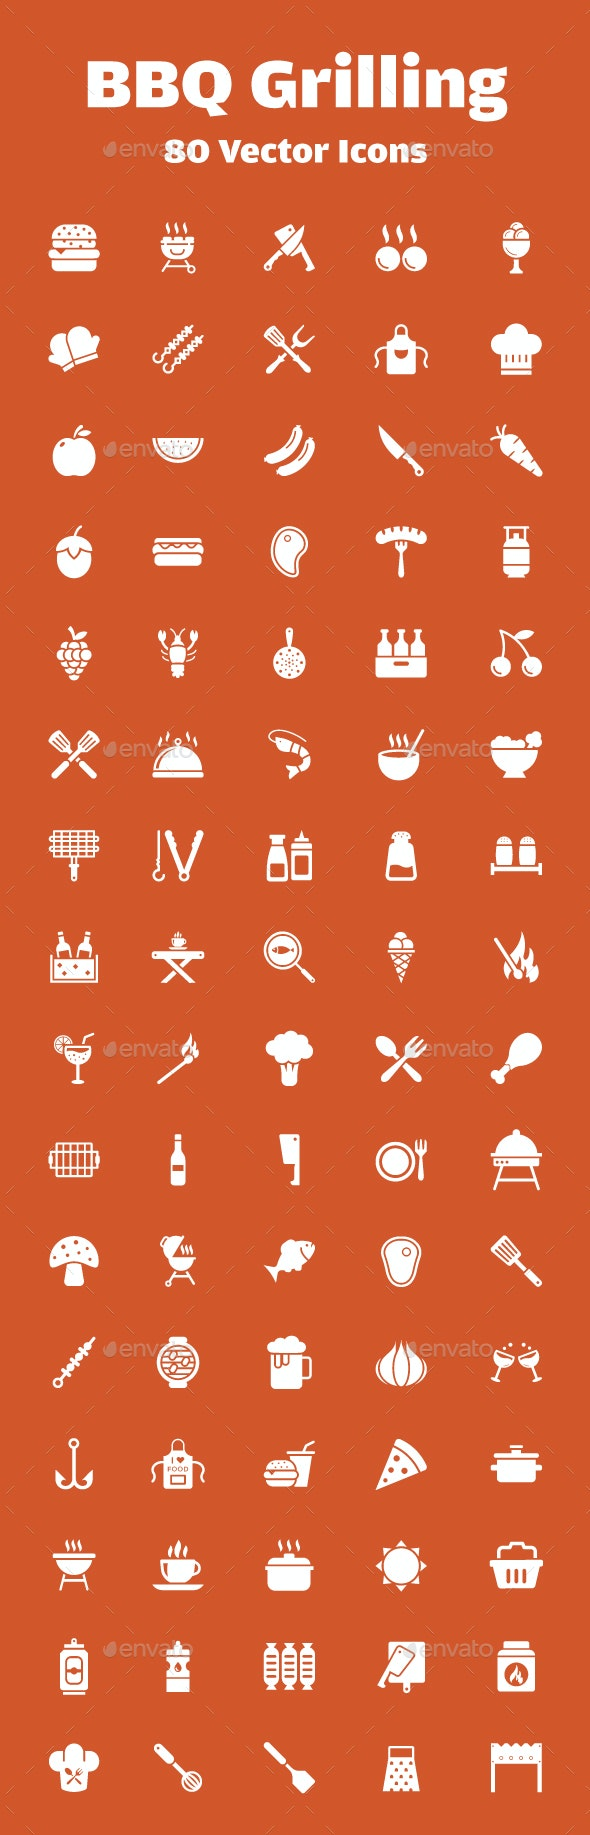 80 Barbeque Grilling Vector Icons - Icons